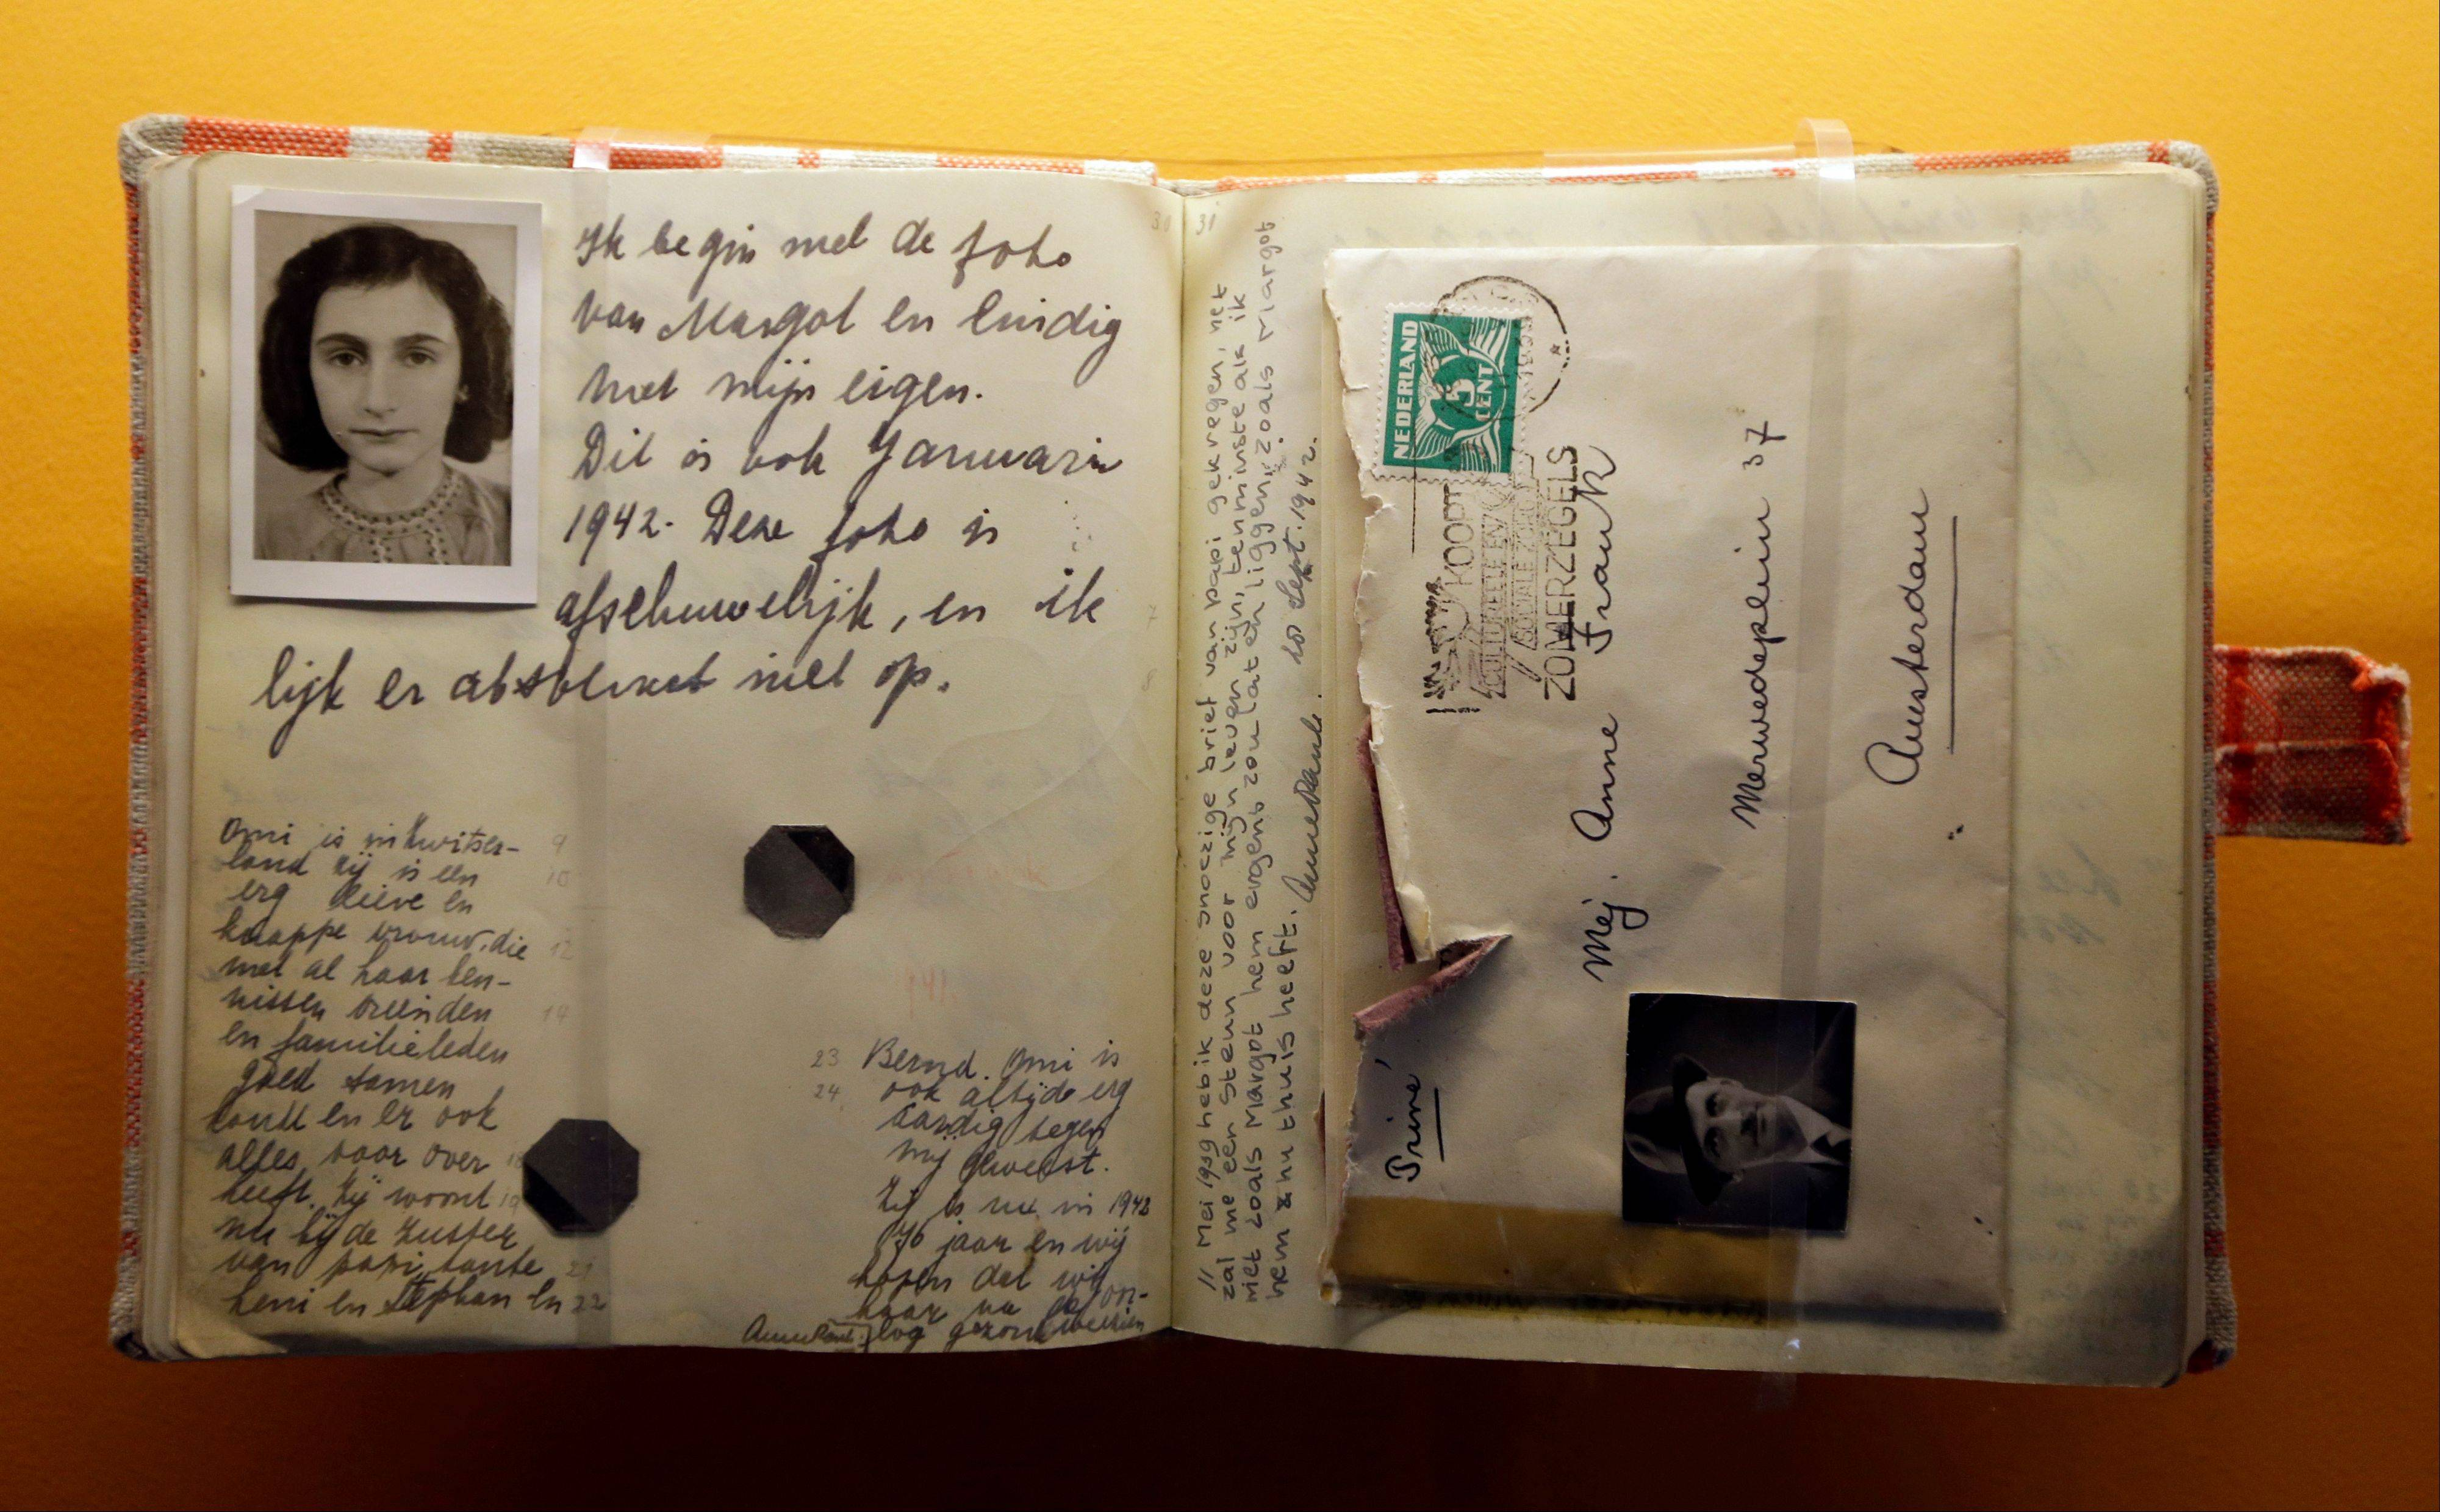 A replica of the Anne Frank Diary is displayed at the Indianapolis Children's Museum in Indianapolis.